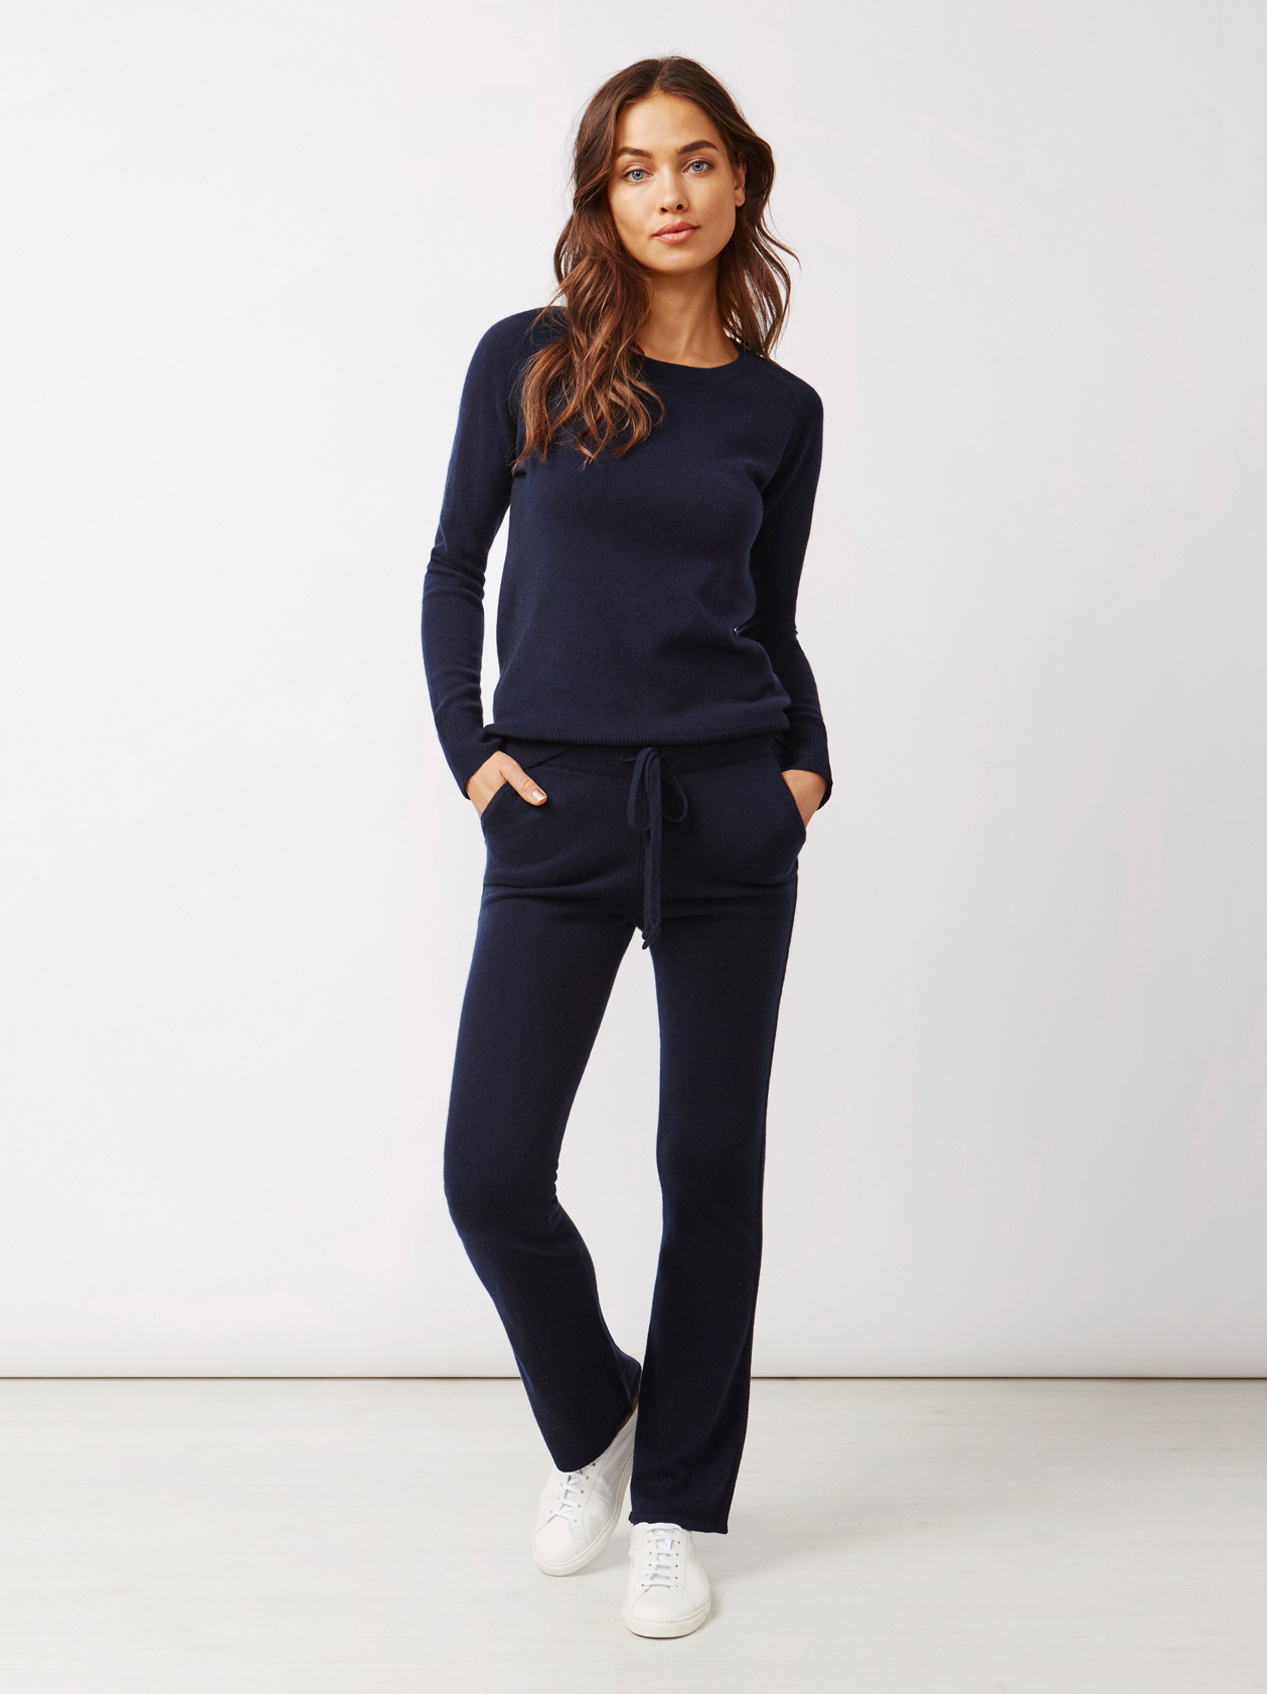 Soft Goat Women's Fitted O-Neck Navy